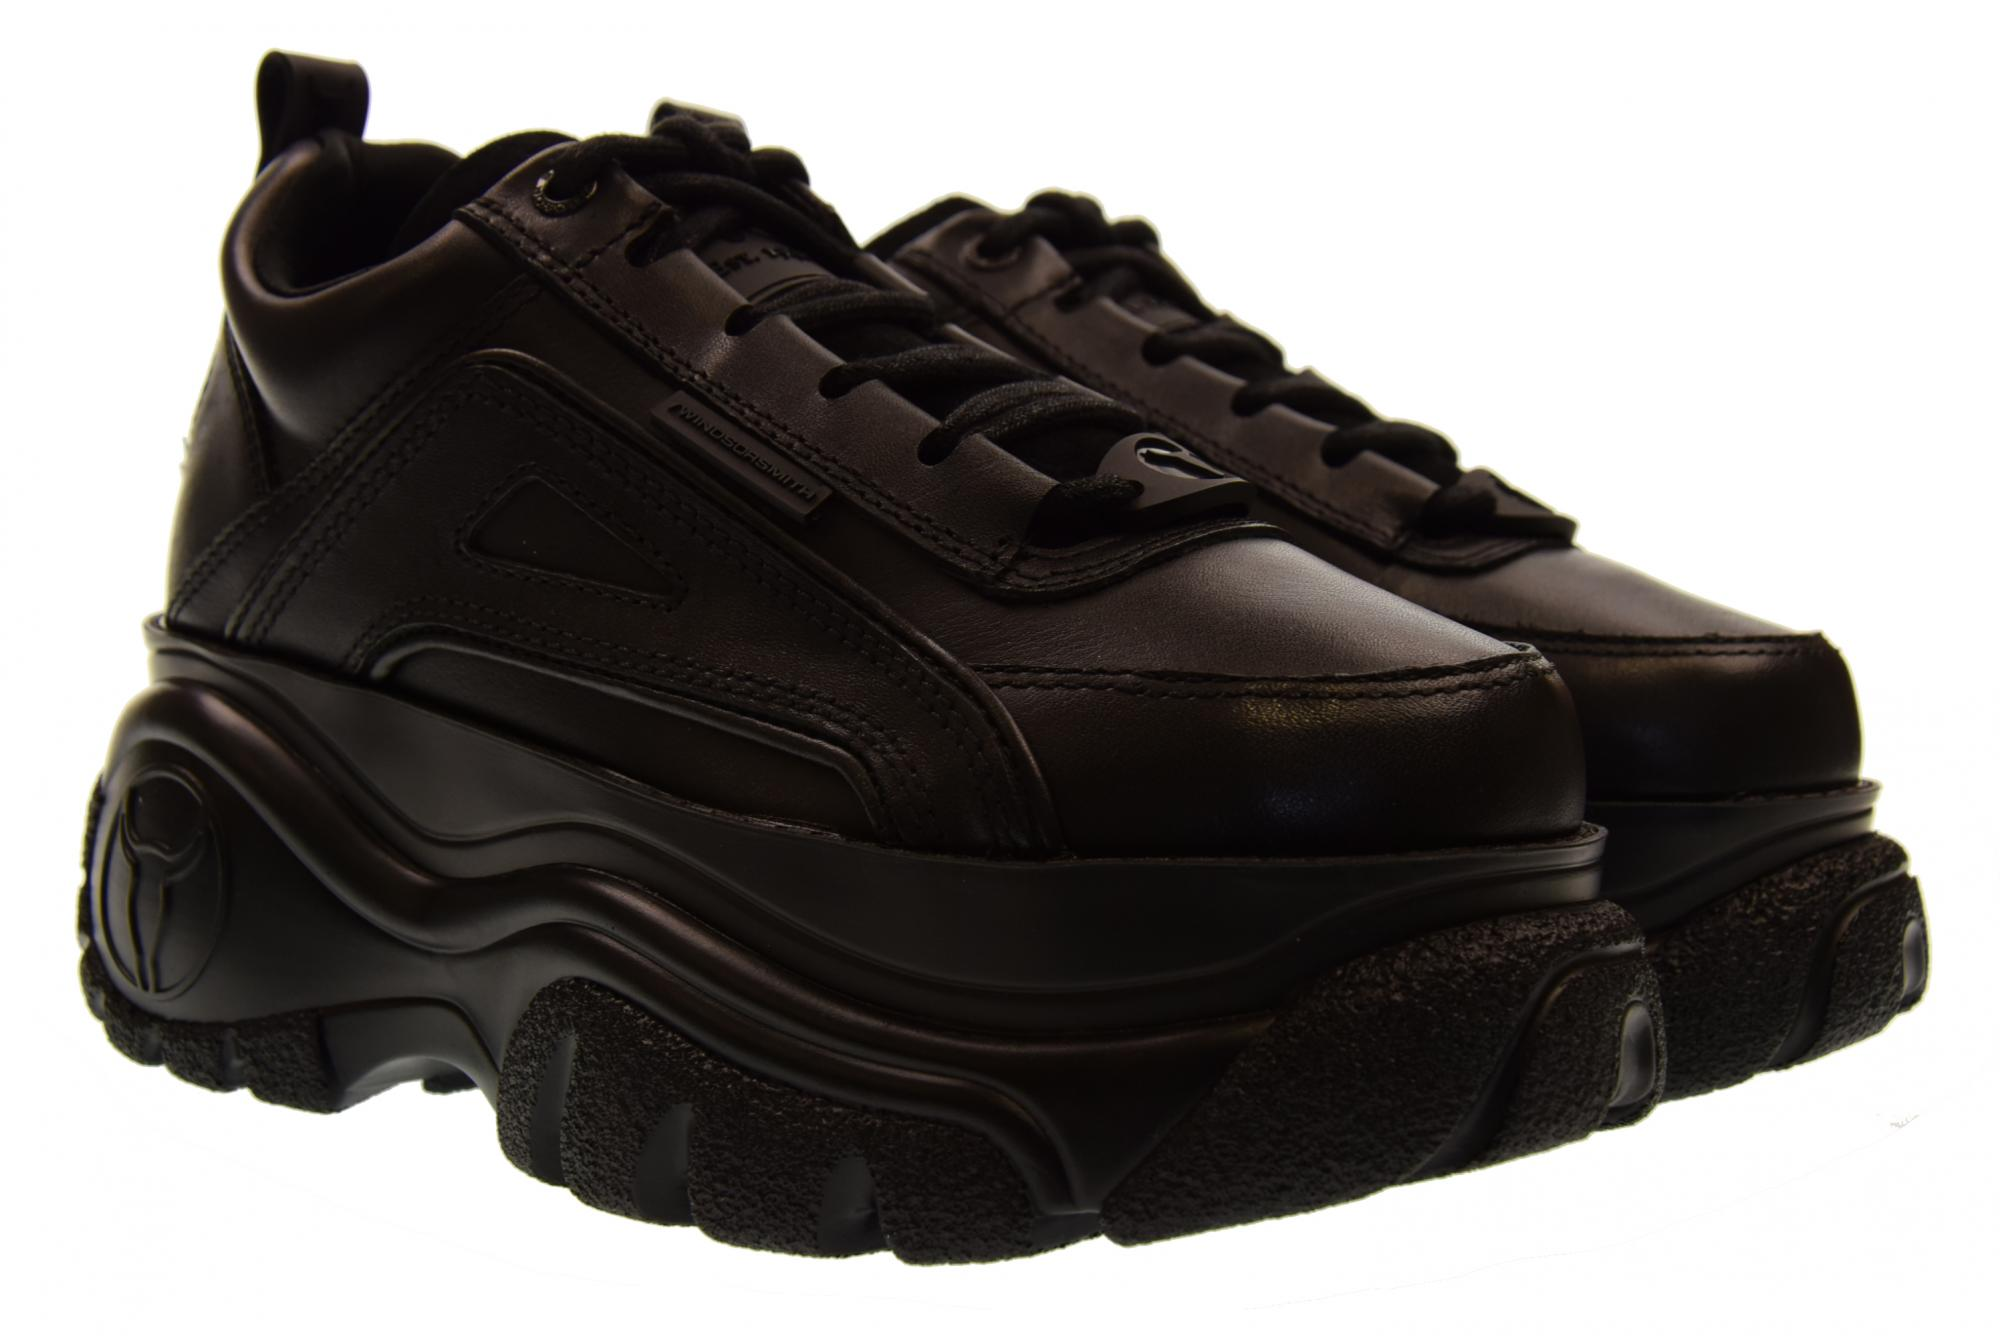 Windsor Smith A18us sneakers woman